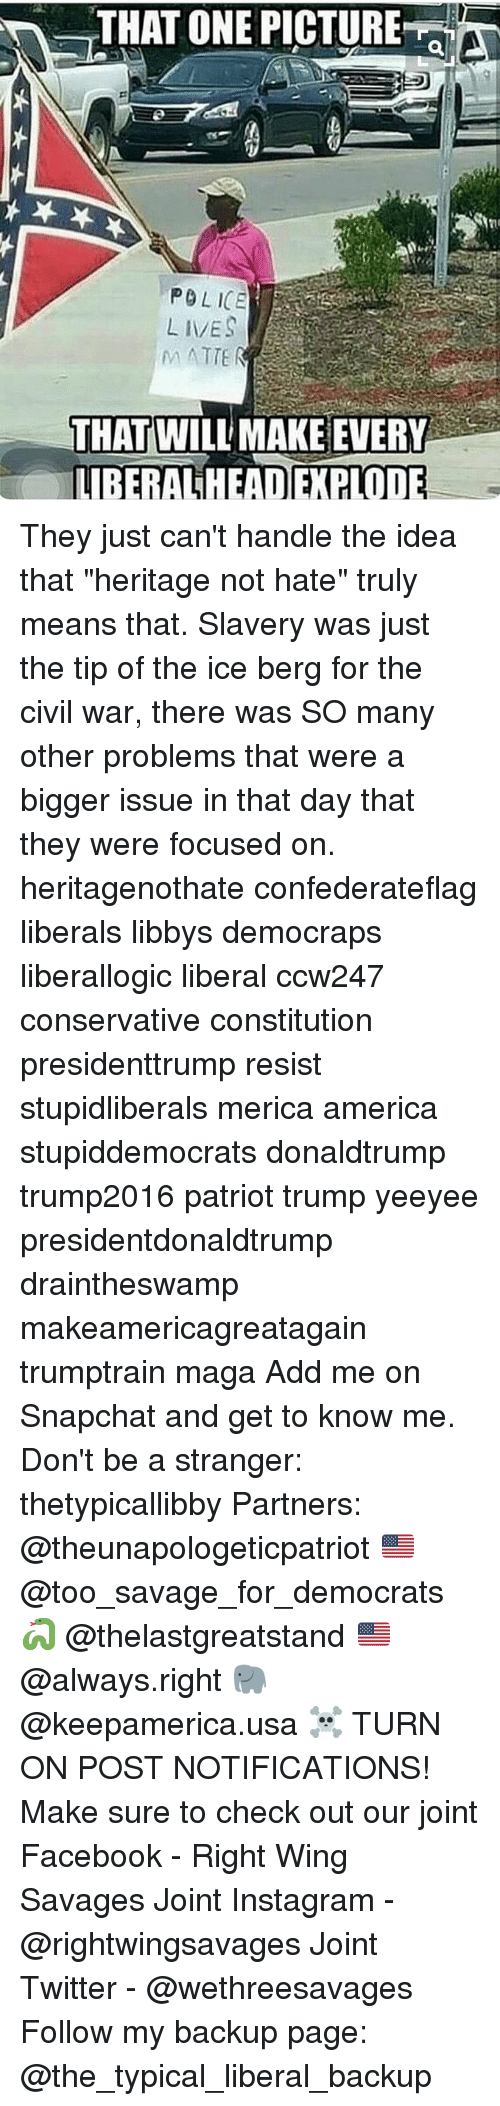 """Conservative, Usa, and Page: THAT ONE PICTURE  POLICE  LIVES  THAT WILL MAKE EVERY  LIBERALHEADEXPLOD They just can't handle the idea that """"heritage not hate"""" truly means that. Slavery was just the tip of the ice berg for the civil war, there was SO many other problems that were a bigger issue in that day that they were focused on. heritagenothate confederateflag liberals libbys democraps liberallogic liberal ccw247 conservative constitution presidenttrump resist stupidliberals merica america stupiddemocrats donaldtrump trump2016 patriot trump yeeyee presidentdonaldtrump draintheswamp makeamericagreatagain trumptrain maga Add me on Snapchat and get to know me. Don't be a stranger: thetypicallibby Partners: @theunapologeticpatriot 🇺🇸 @too_savage_for_democrats 🐍 @thelastgreatstand 🇺🇸 @always.right 🐘 @keepamerica.usa ☠️ TURN ON POST NOTIFICATIONS! Make sure to check out our joint Facebook - Right Wing Savages Joint Instagram - @rightwingsavages Joint Twitter - @wethreesavages Follow my backup page: @the_typical_liberal_backup"""